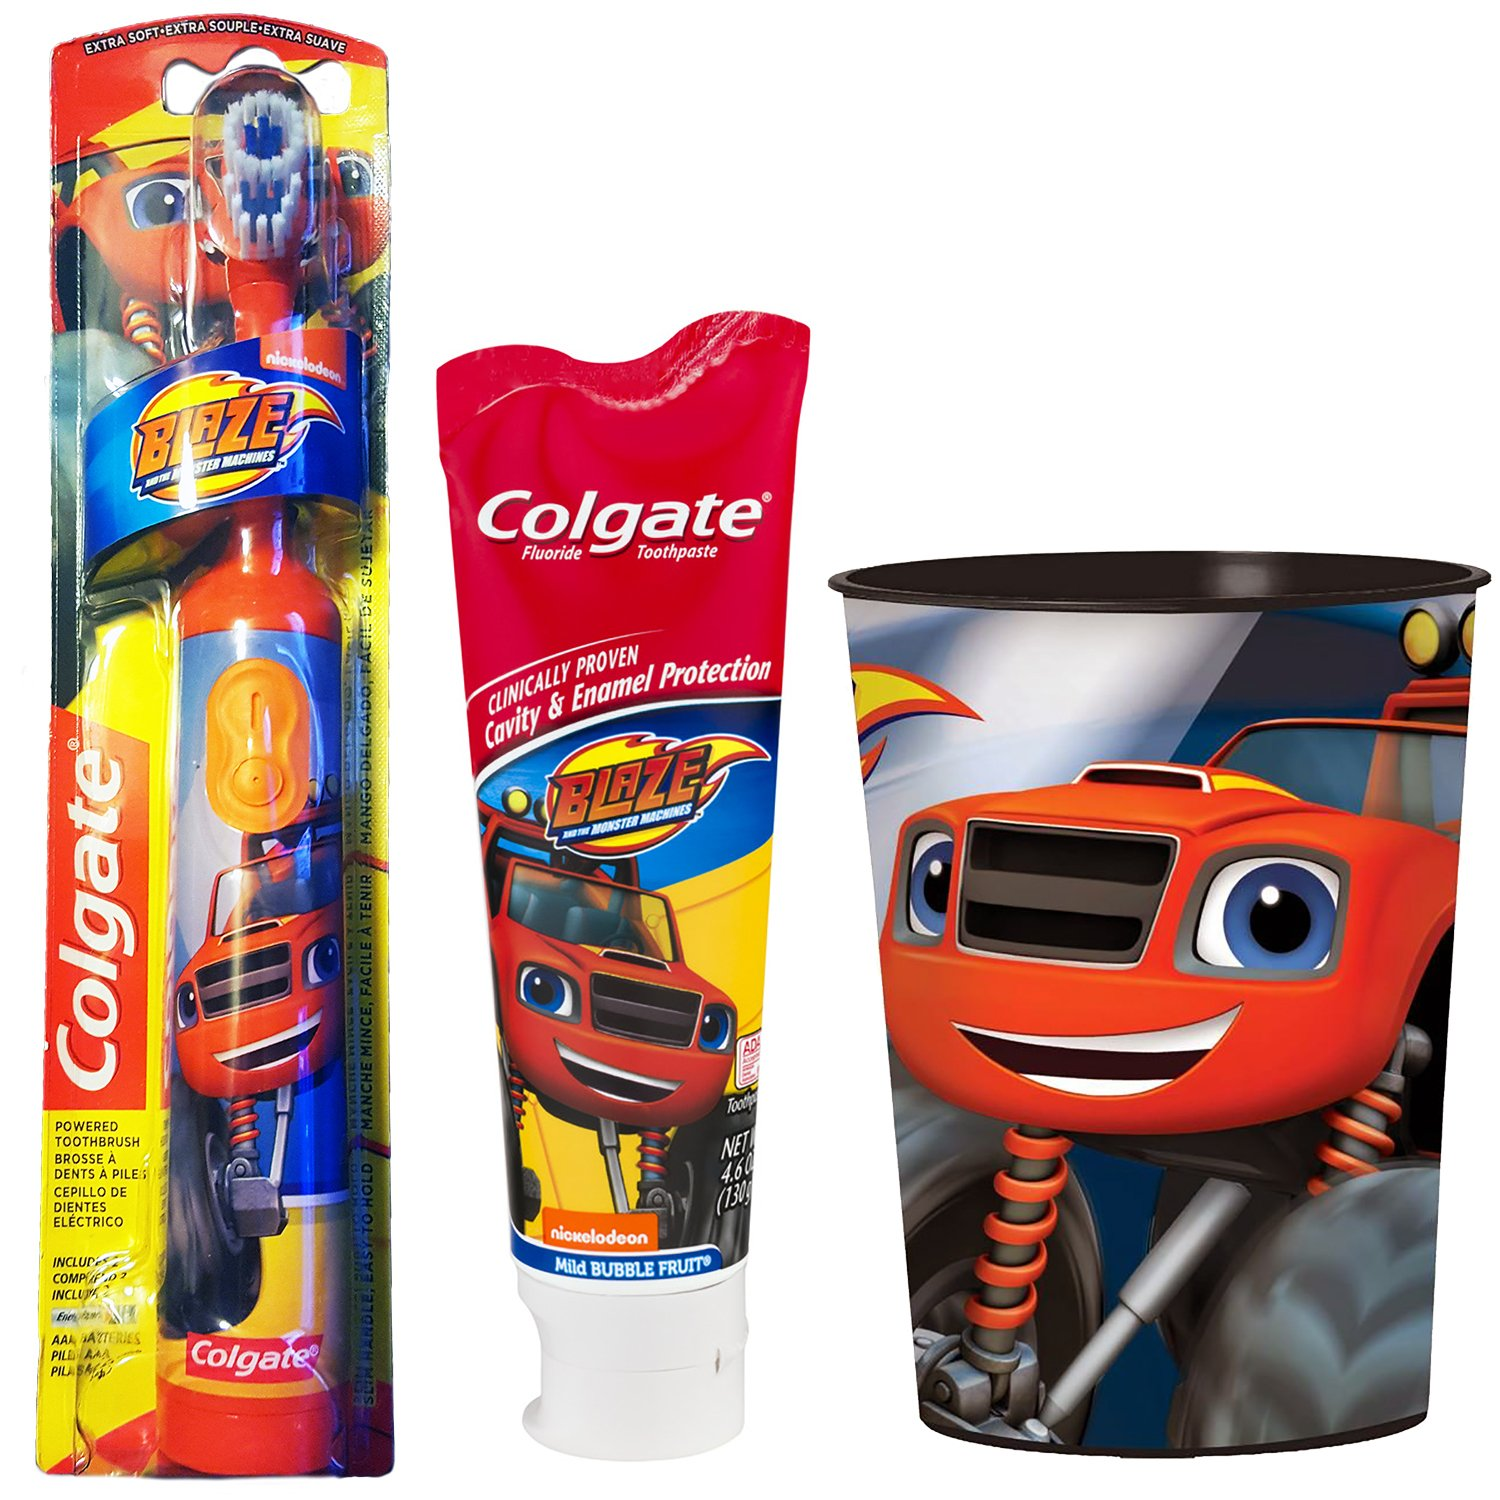 Amazon.com: Blaze And The Monster Machines Toothbrush & Toothpaste Bundle: 3 Items - Powered Toothbrush, Mild Bubble Fruit Toothpaste, Kids Character Rinse ...